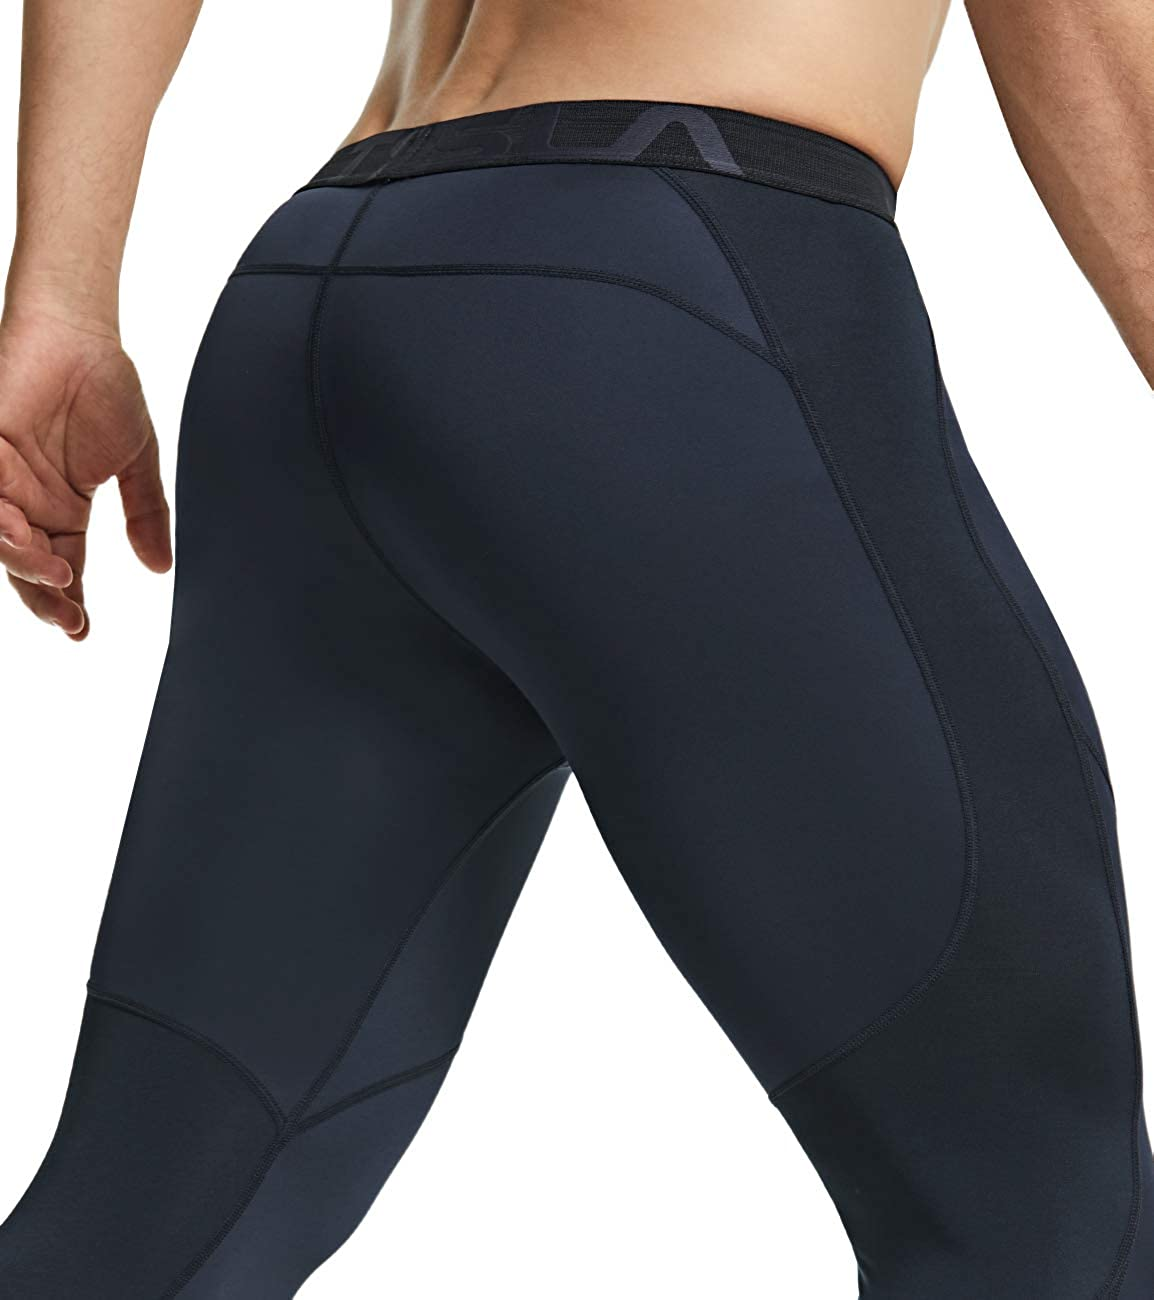 Cool Dry Performance Boosting Baselayer 2 or 3 Pack Mens Compression Pants Running Tights Workout Leggings TSLA 1